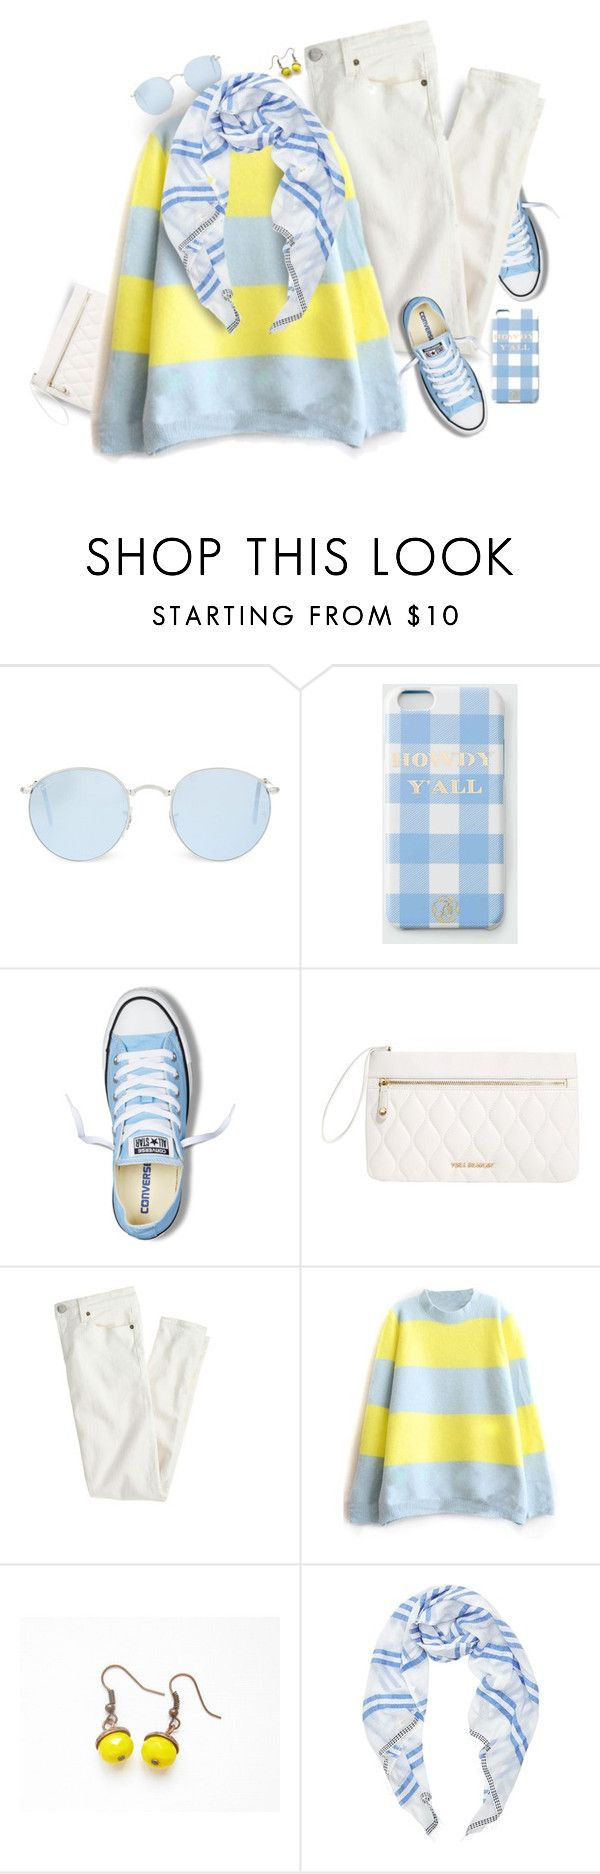 """Lemon + Baby Blue."" by s-elle ❤ liked on Polyvore featuring Ray-Ban, Draper James, Converse, Vera Bradley, J.Crew, Lemlem, women's clothing, women, female and woman"